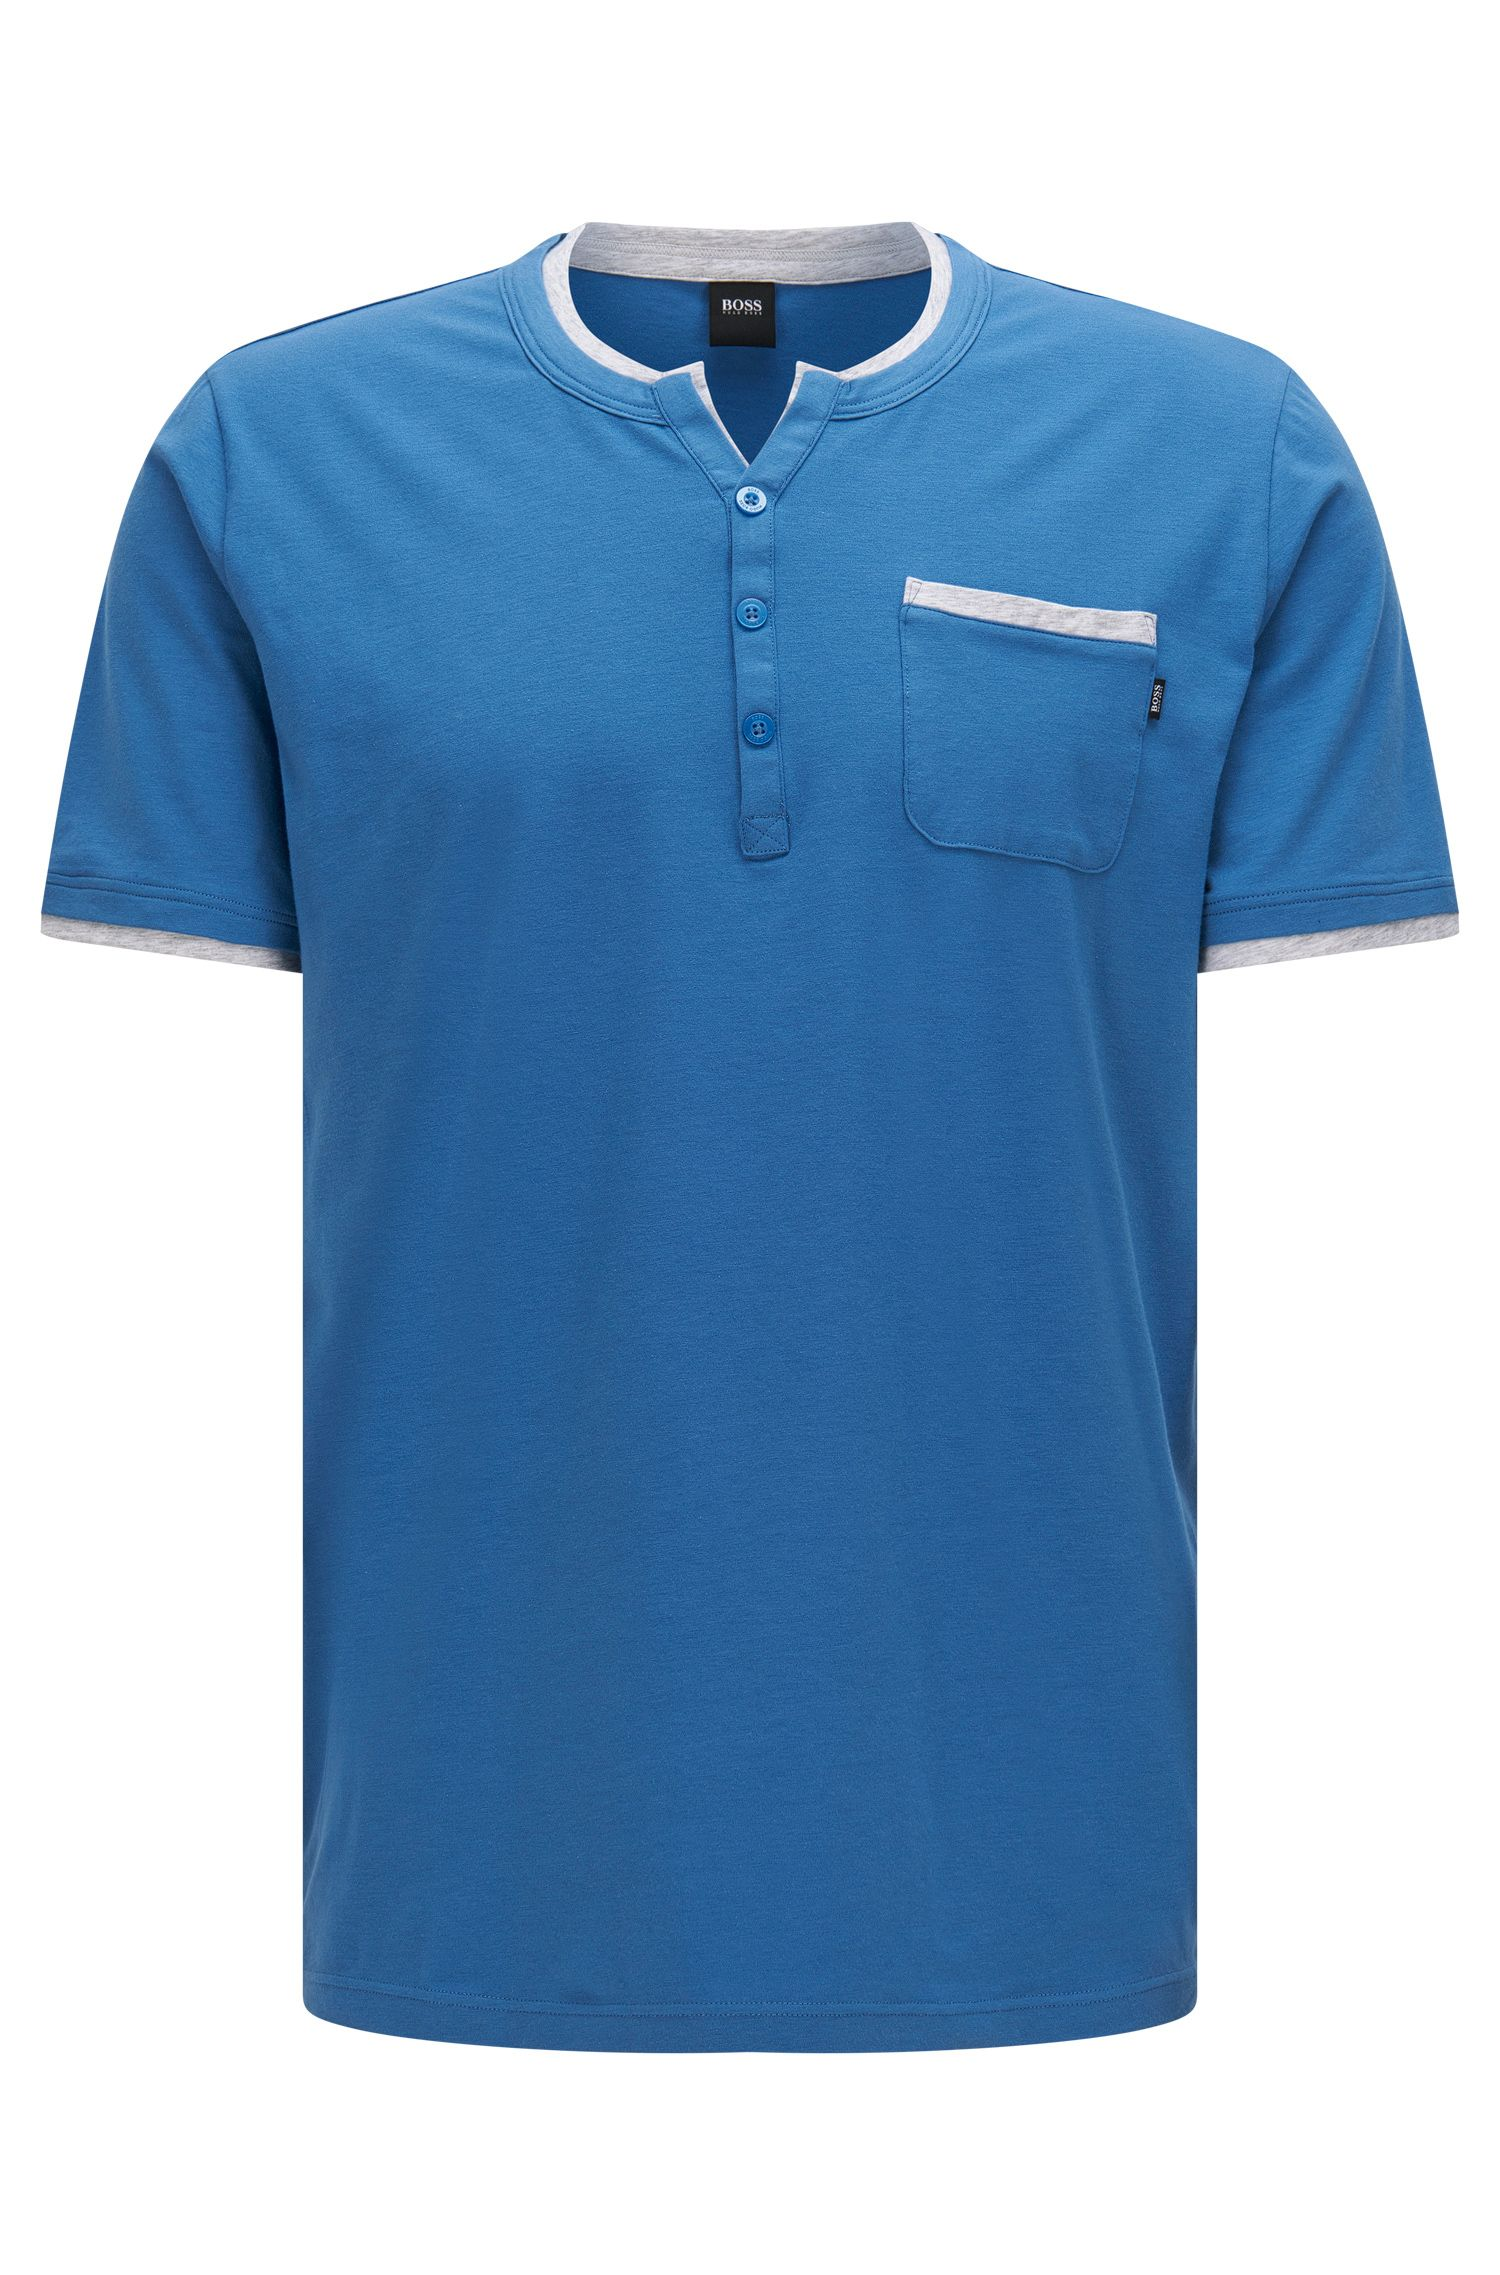 Pyjama t-shirt in stretch cotton blend with modal: 'T-Shirt BP'